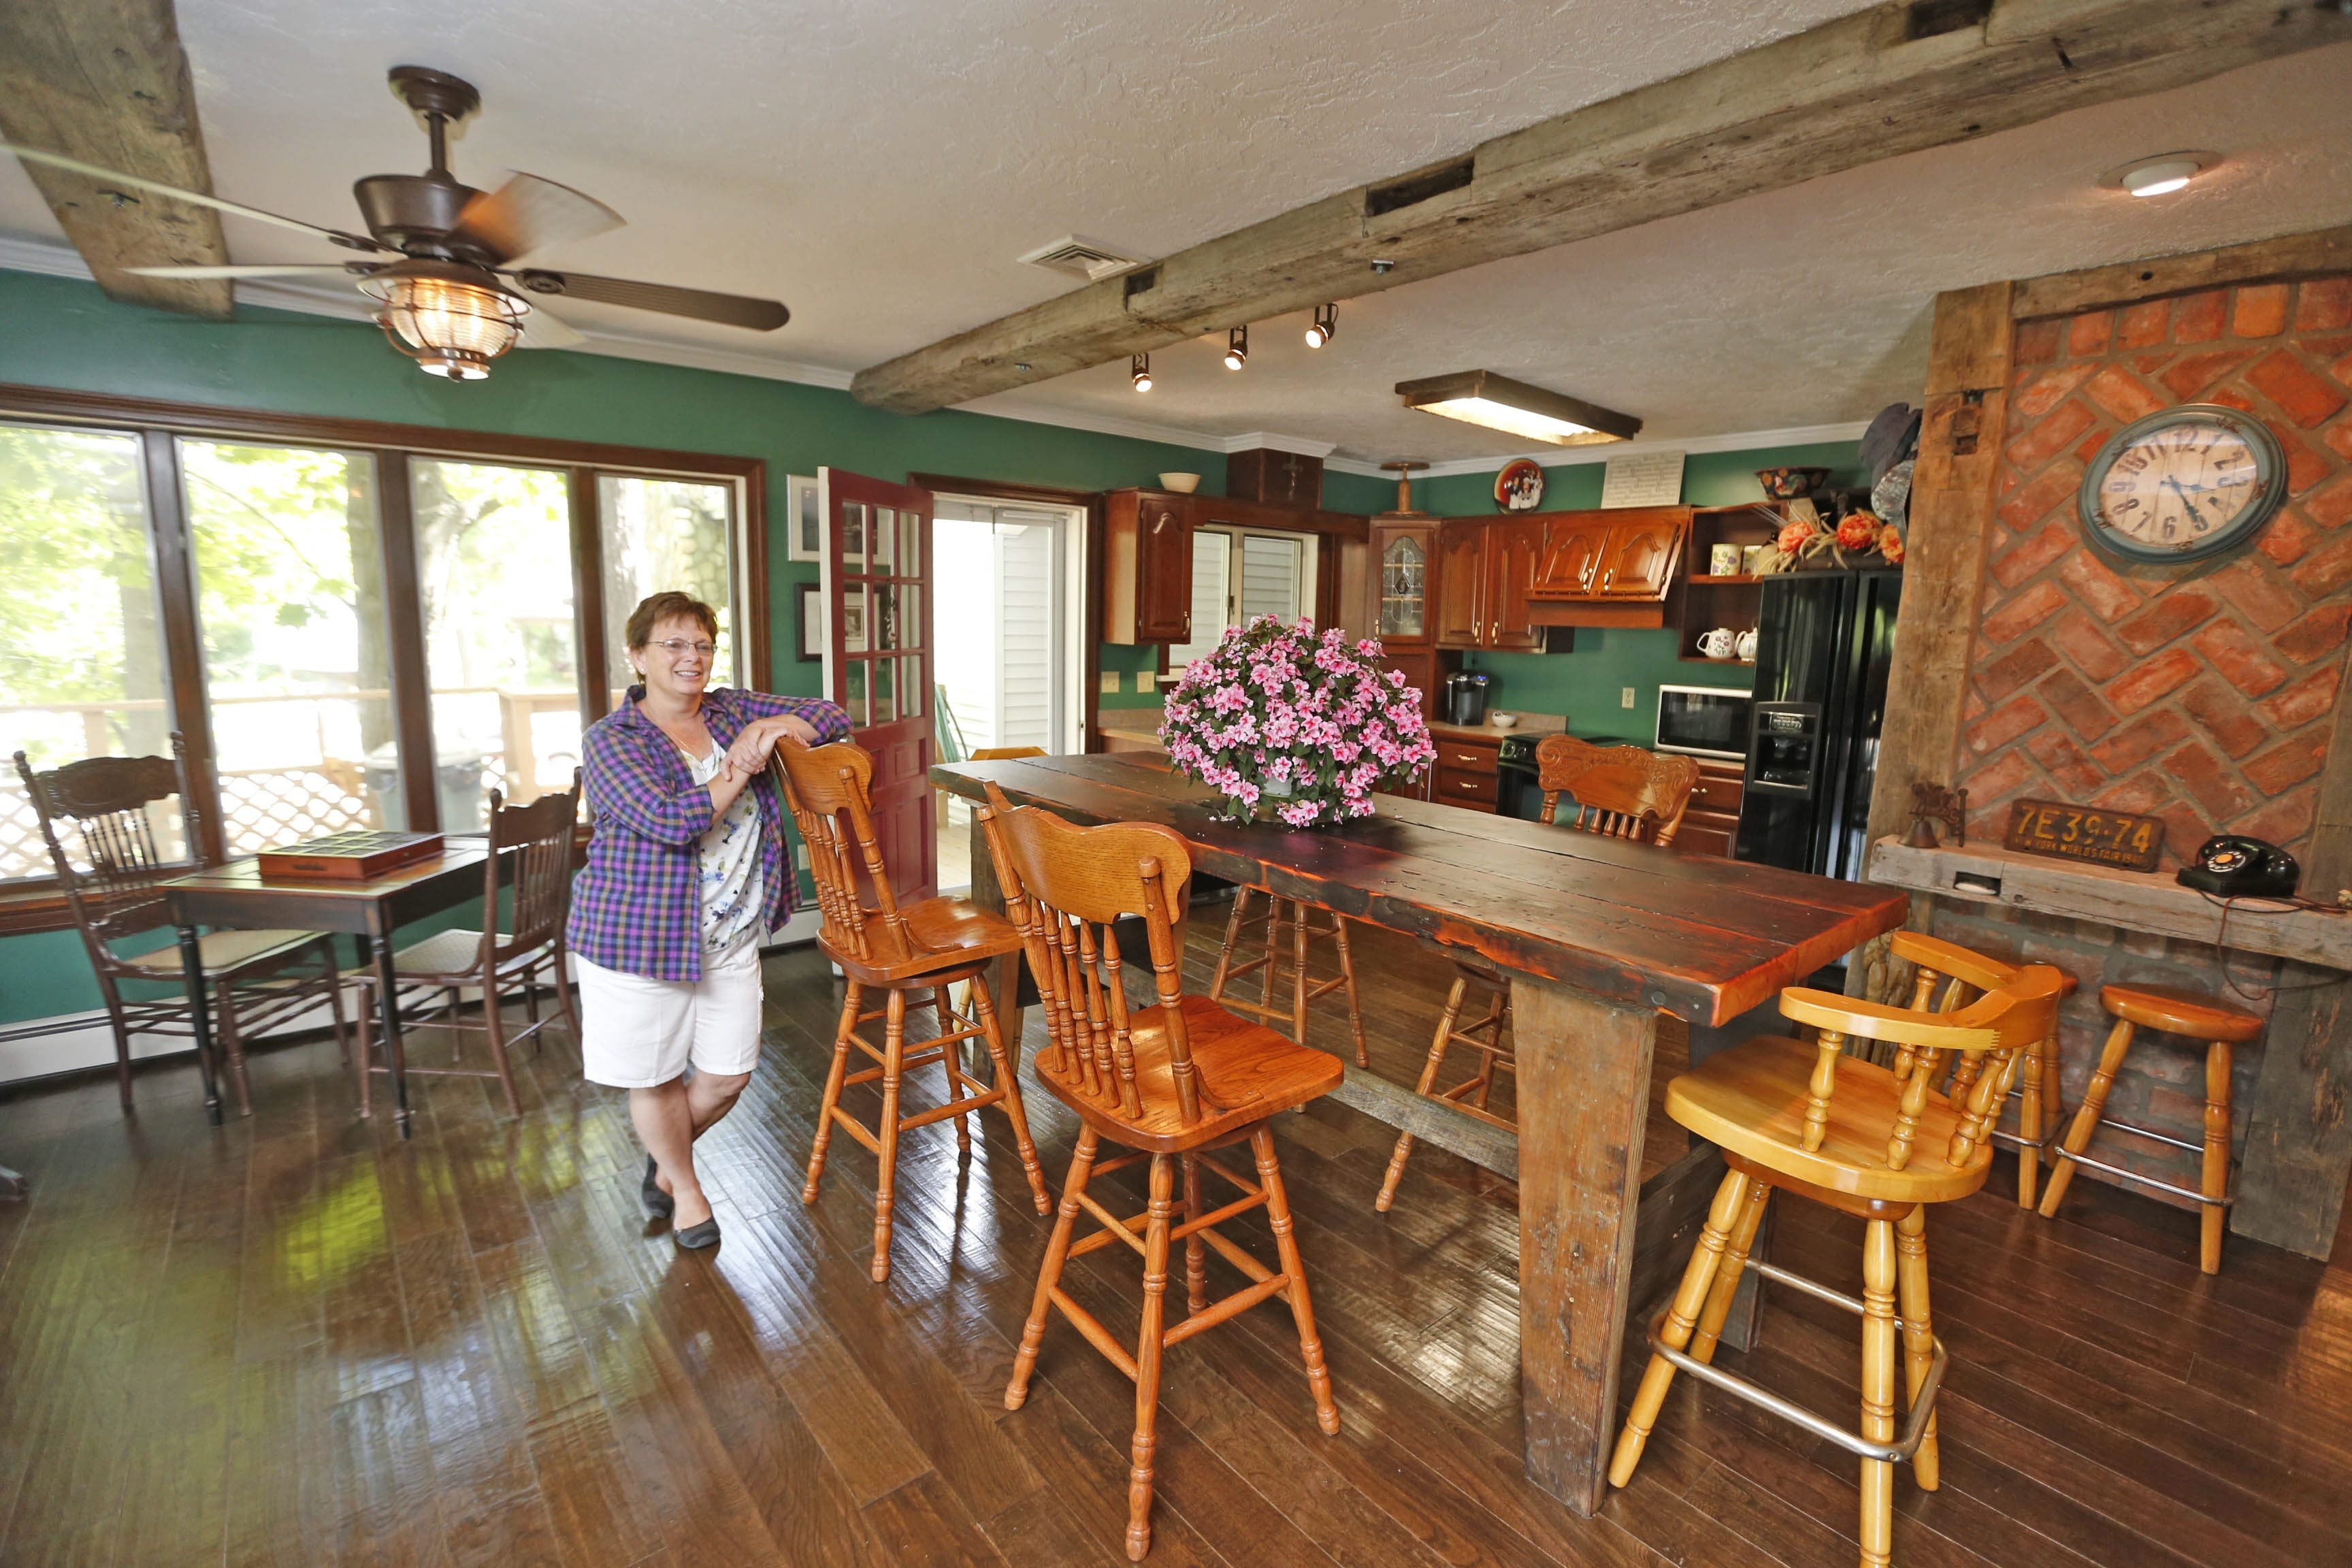 Diane Johnson has just opened a new inn and will conduct haunted harbor walks.